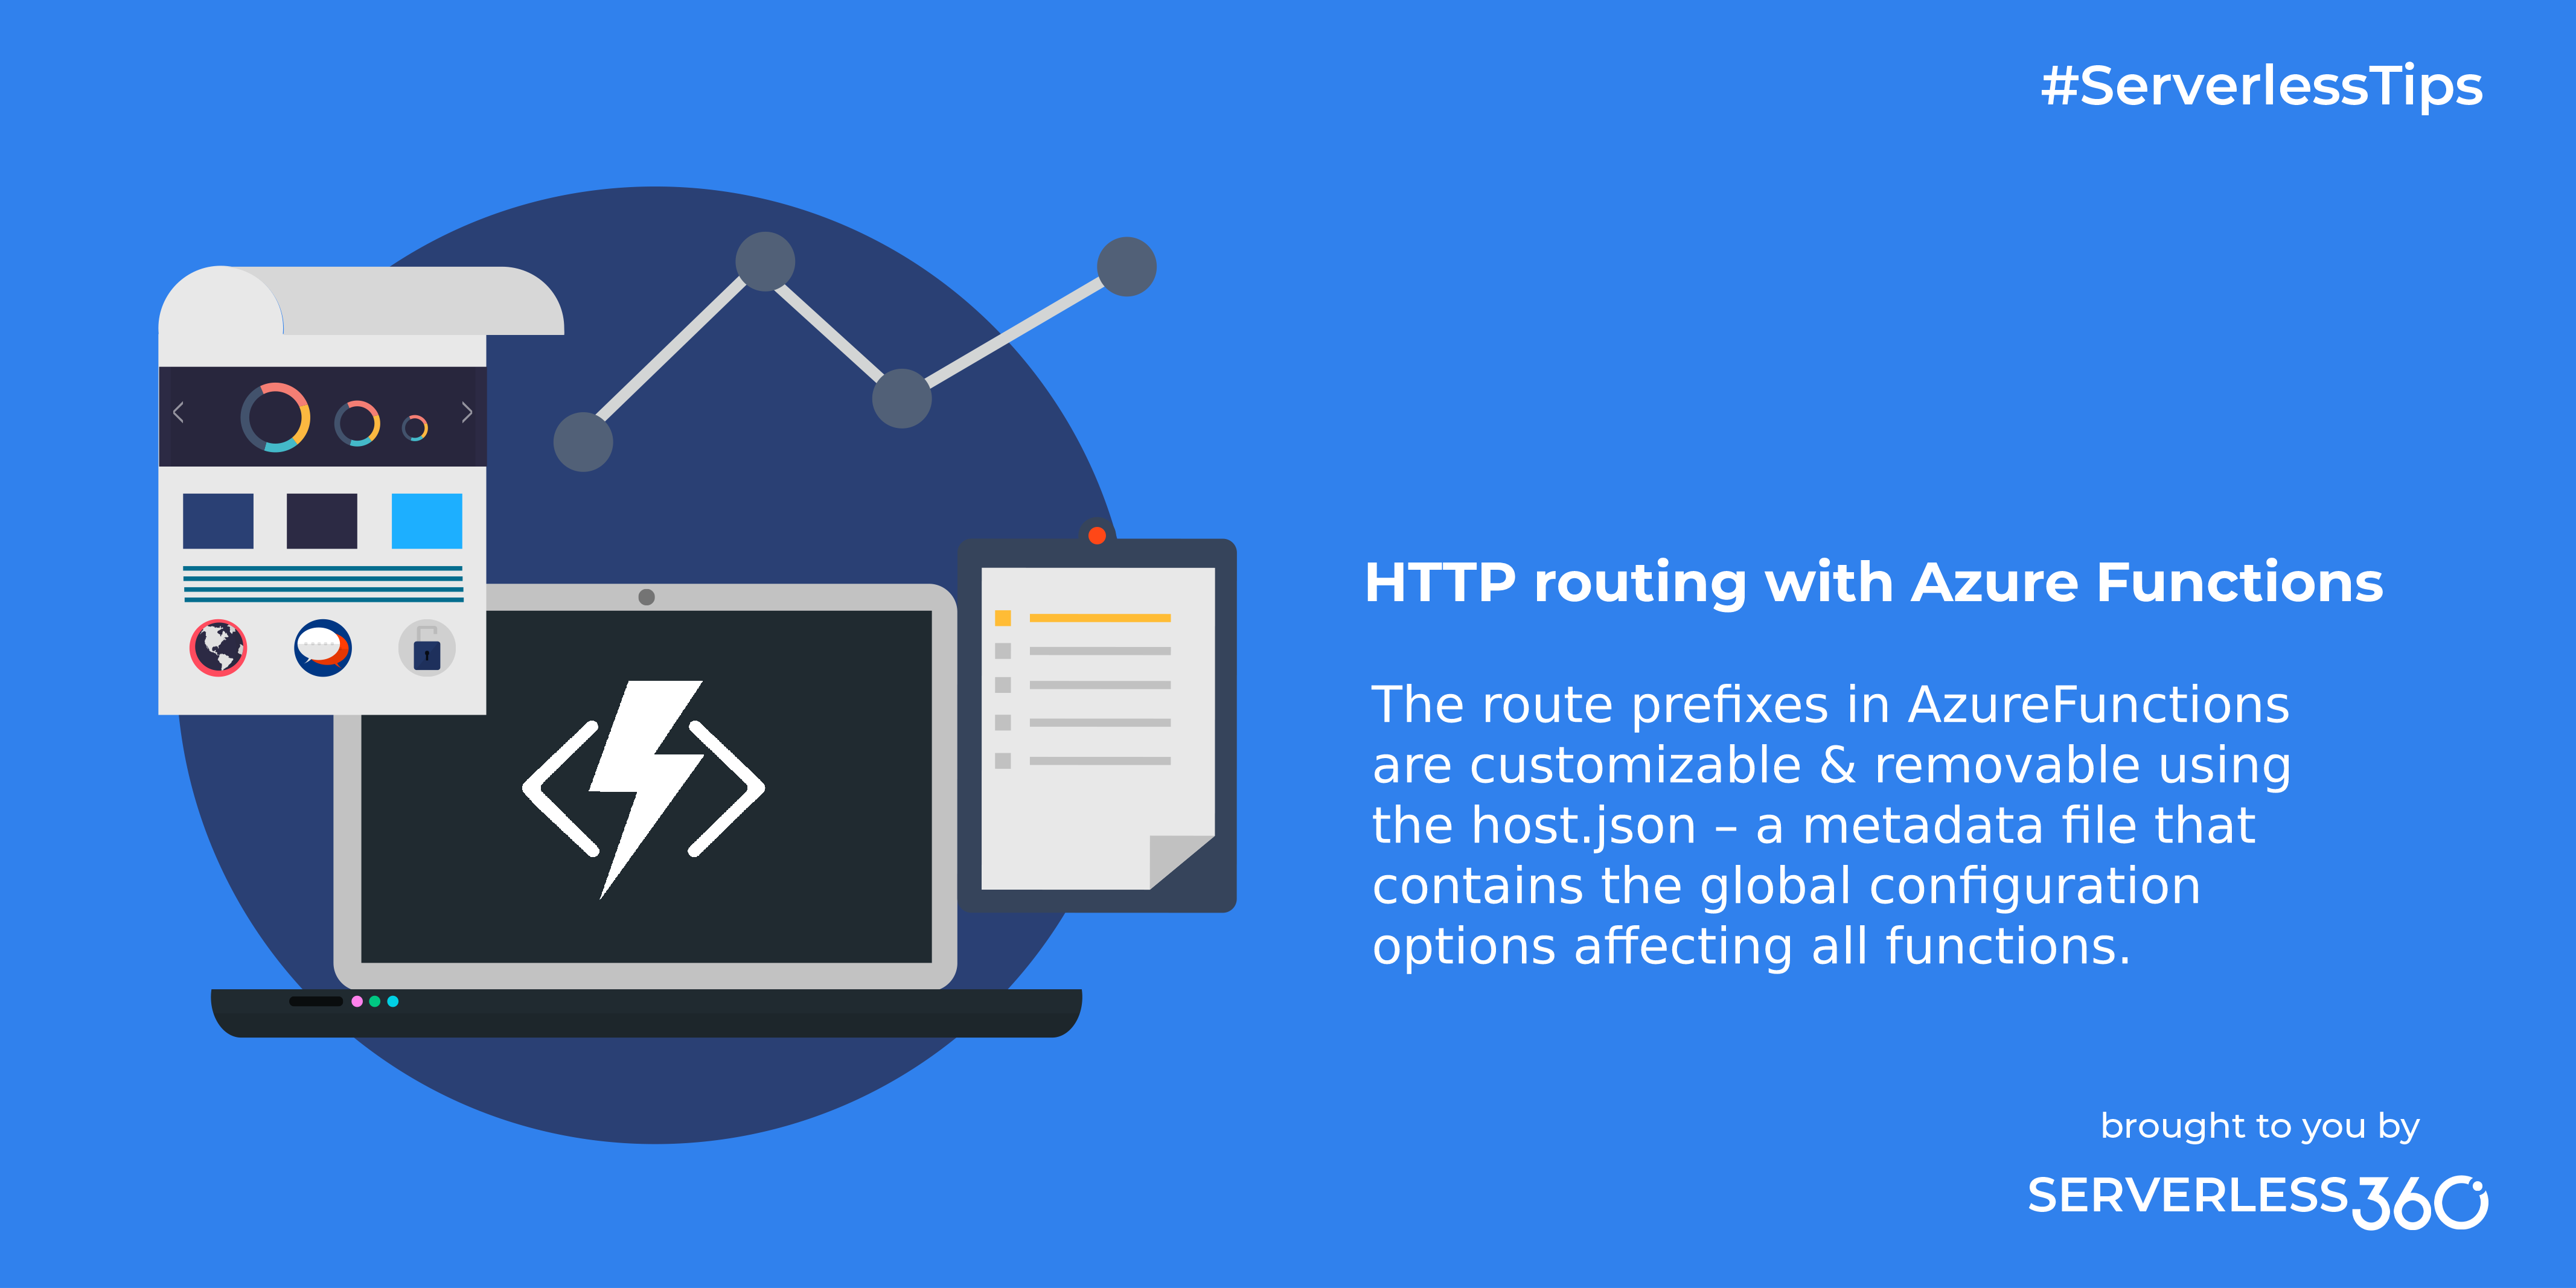 HTTP routing with Azure Functions - Azure Functions